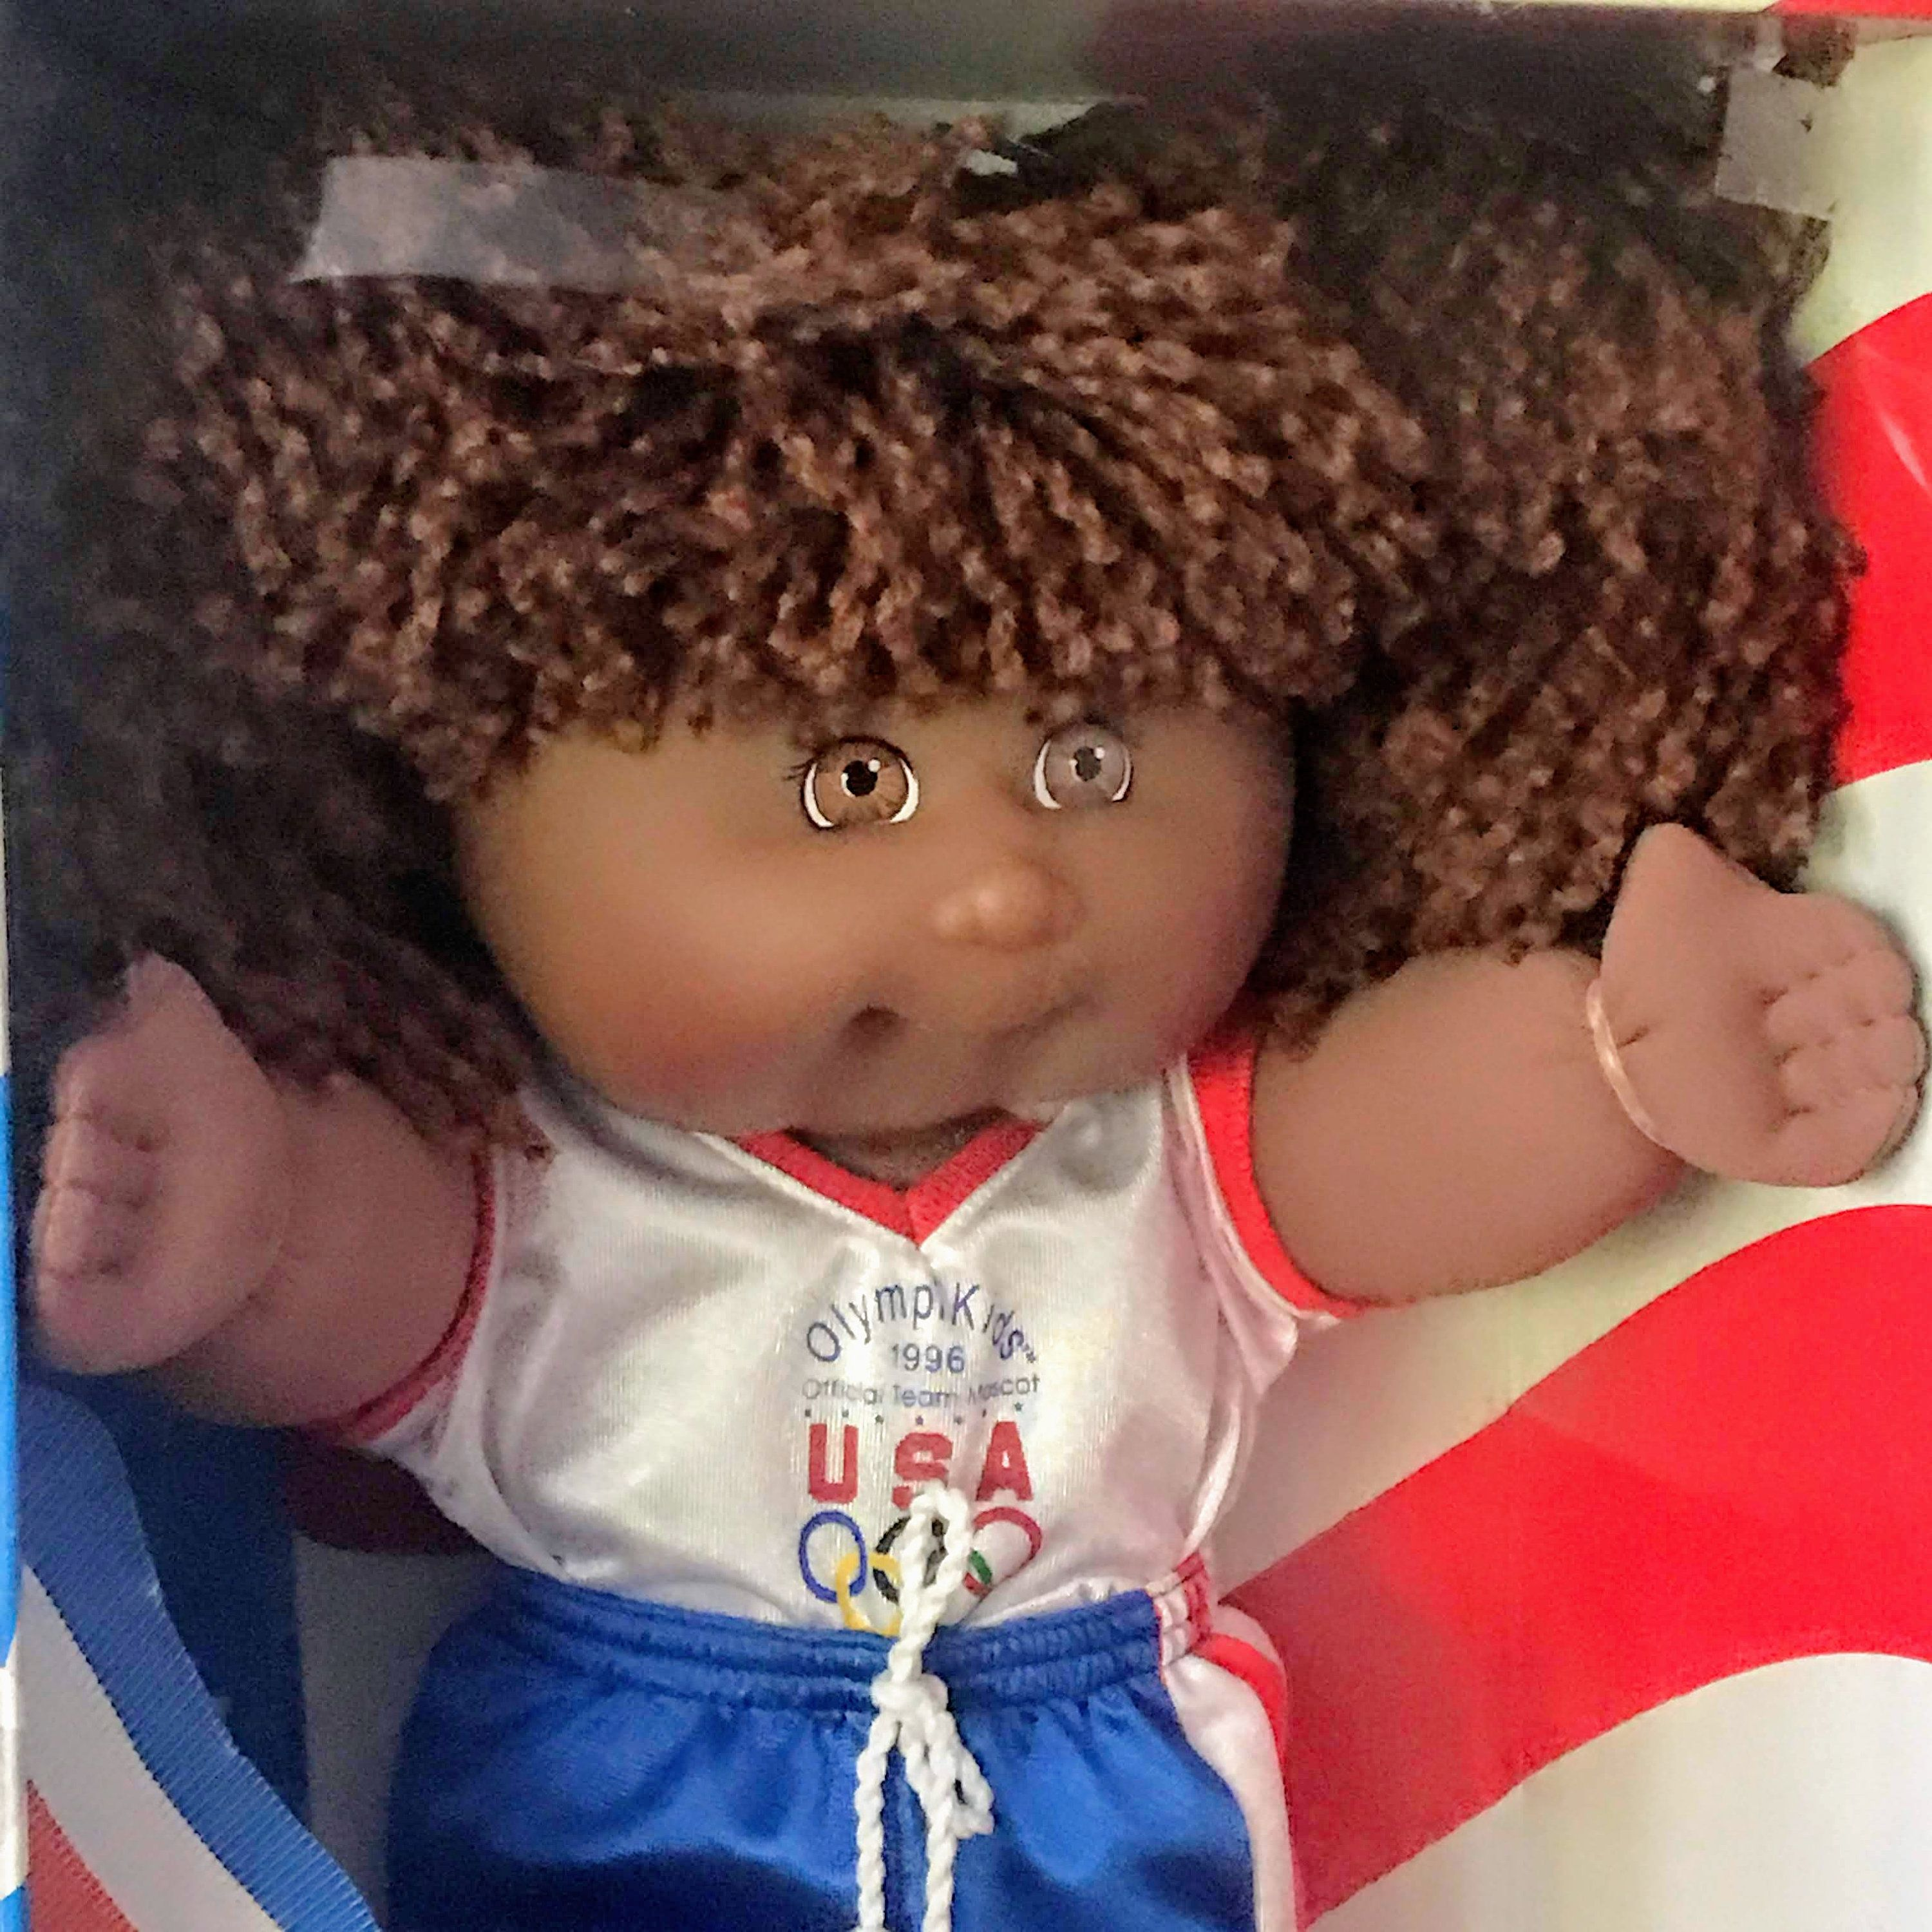 Vintage Doll Cabbage Patch Doll New In Box 1996 Official Etsy Cabbage Patch Dolls African American Dolls Vintage Doll